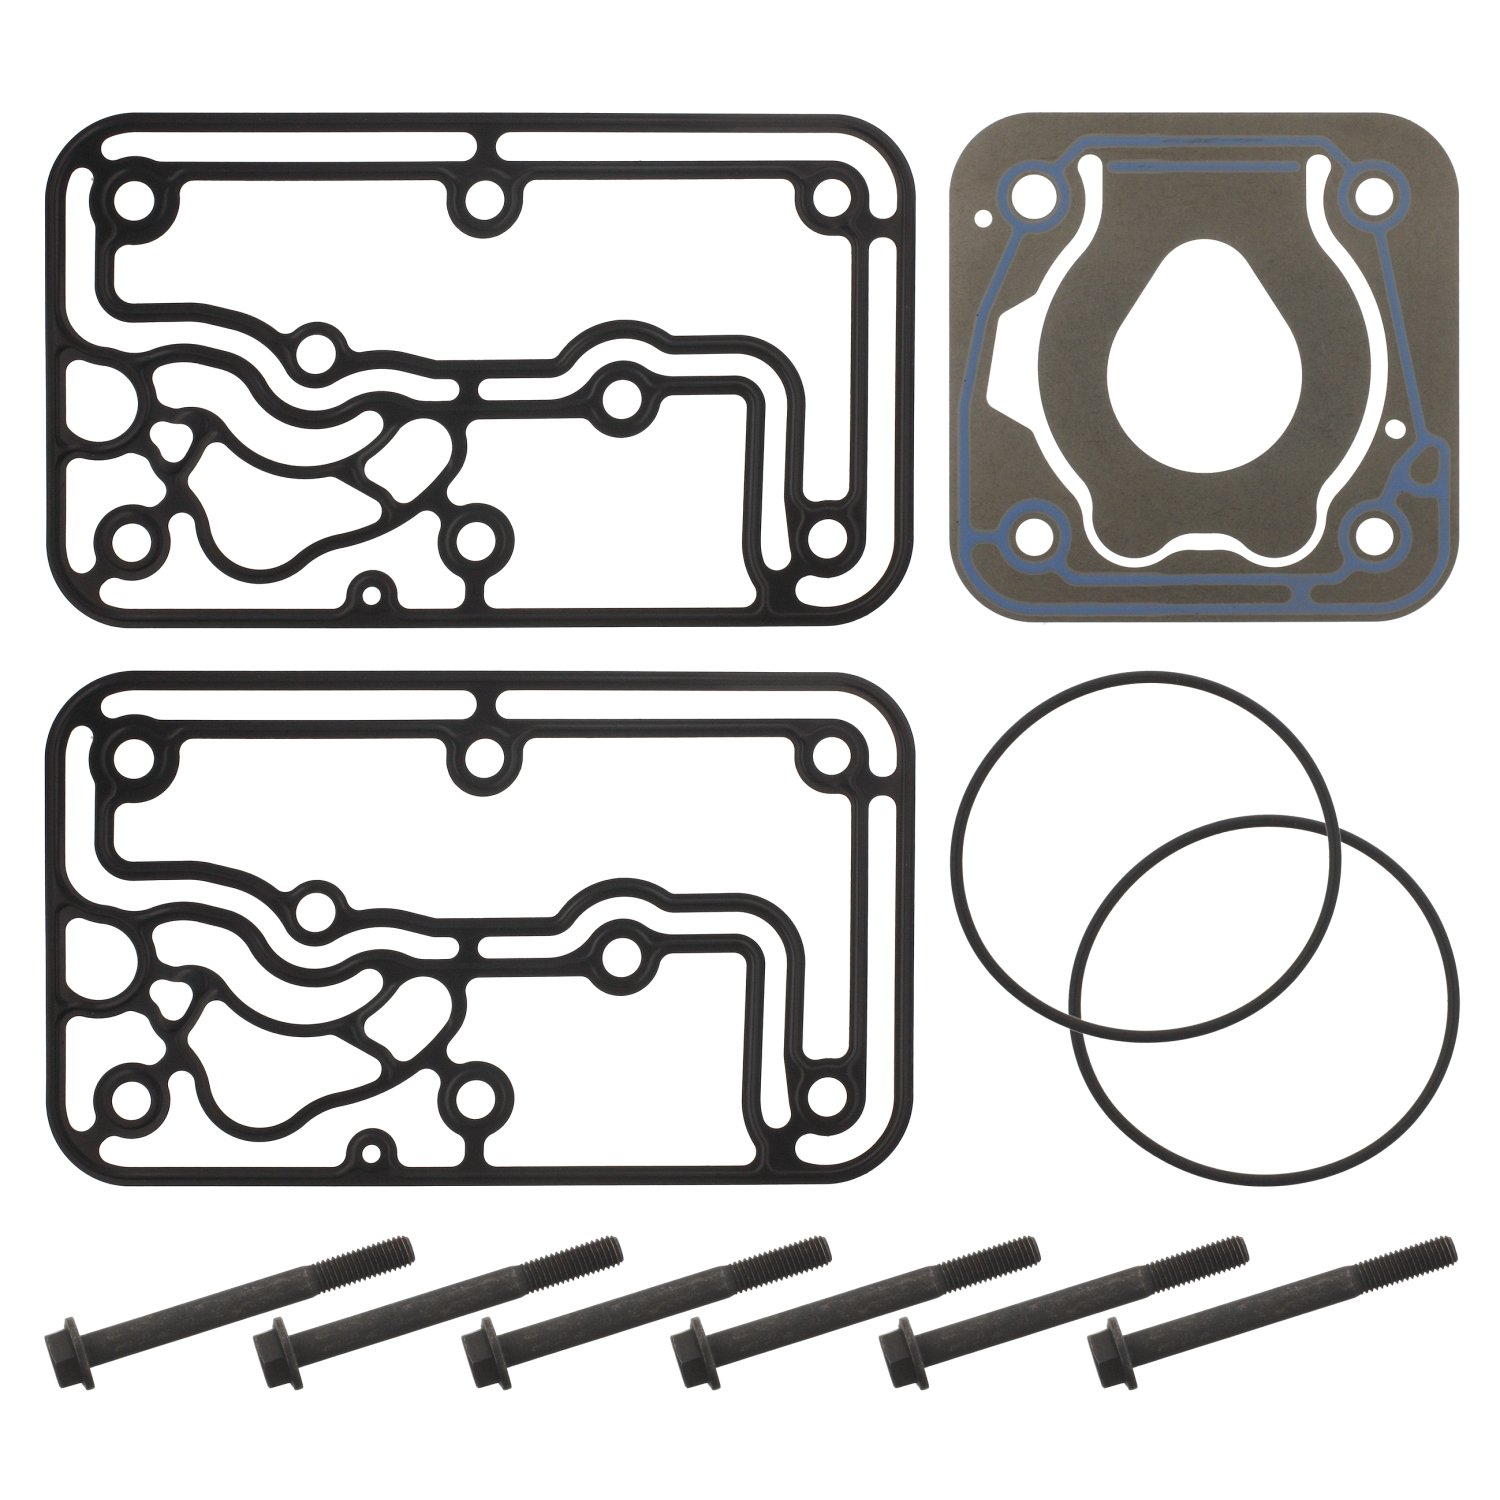 Pack of 1 kit lamella valve for air compressor without valve plate febi bilstein 37807 rep